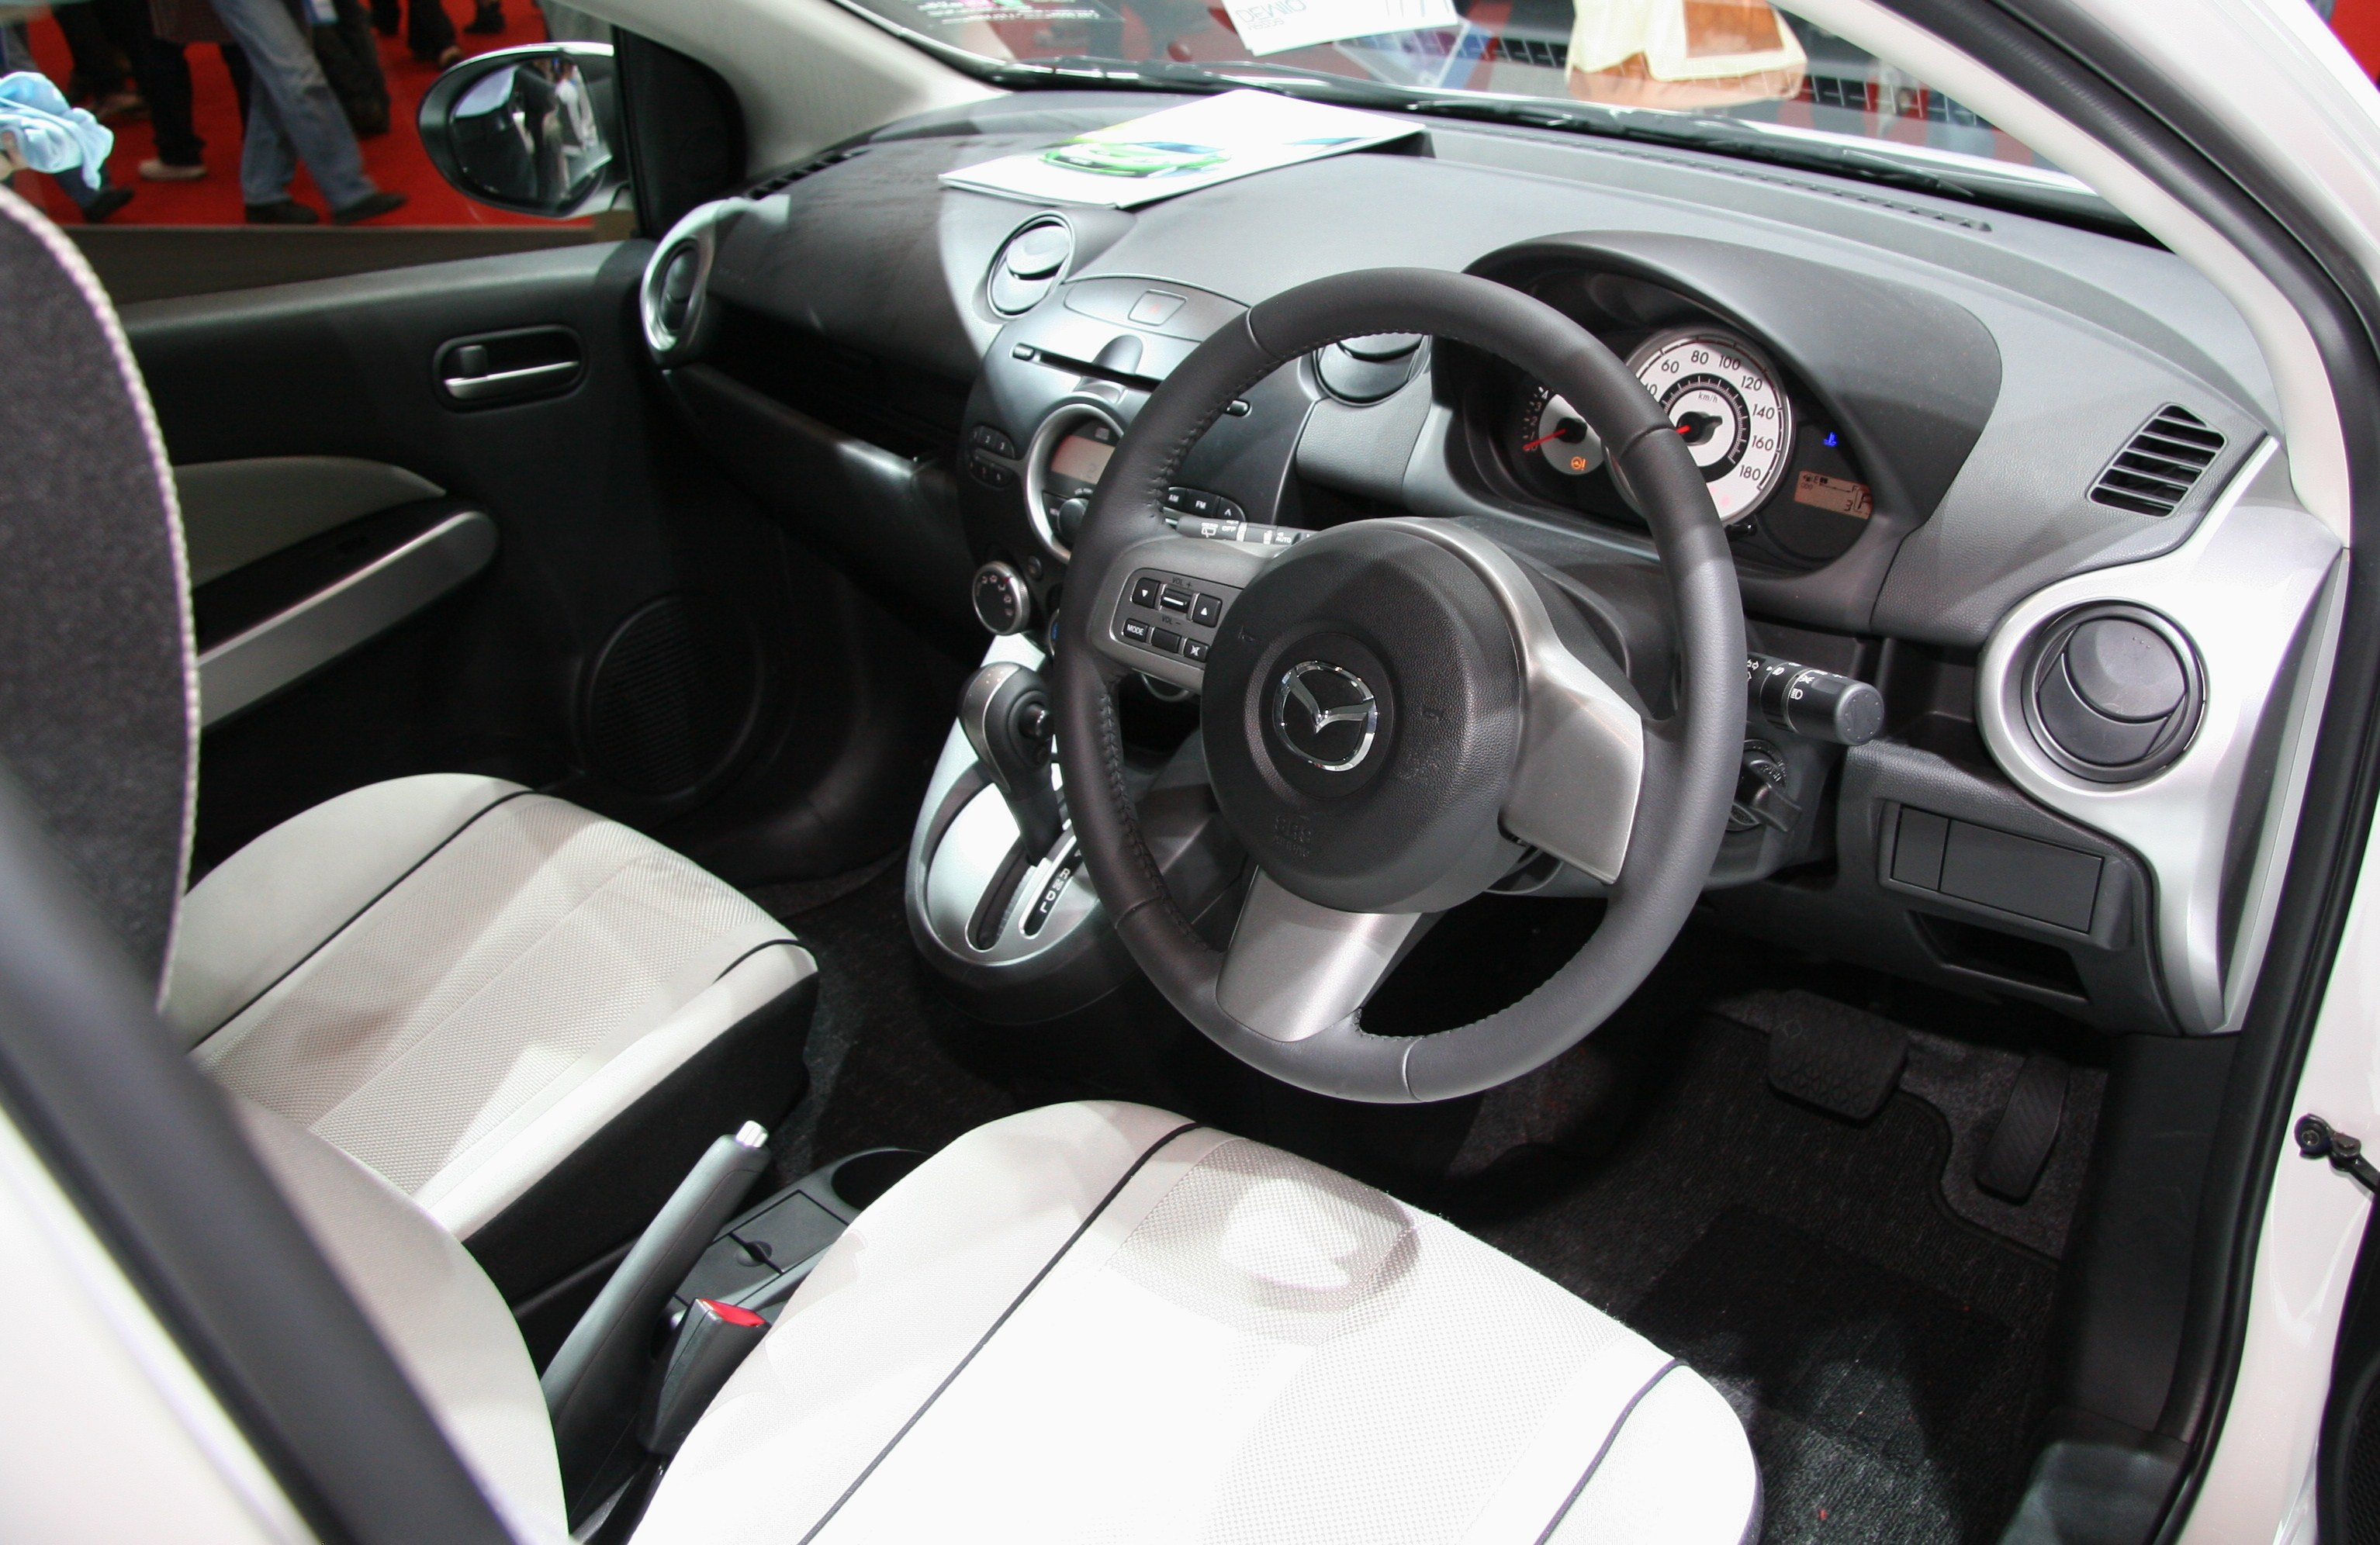 File:Mazda Demio DE interior.jpg - Wikimedia Commons